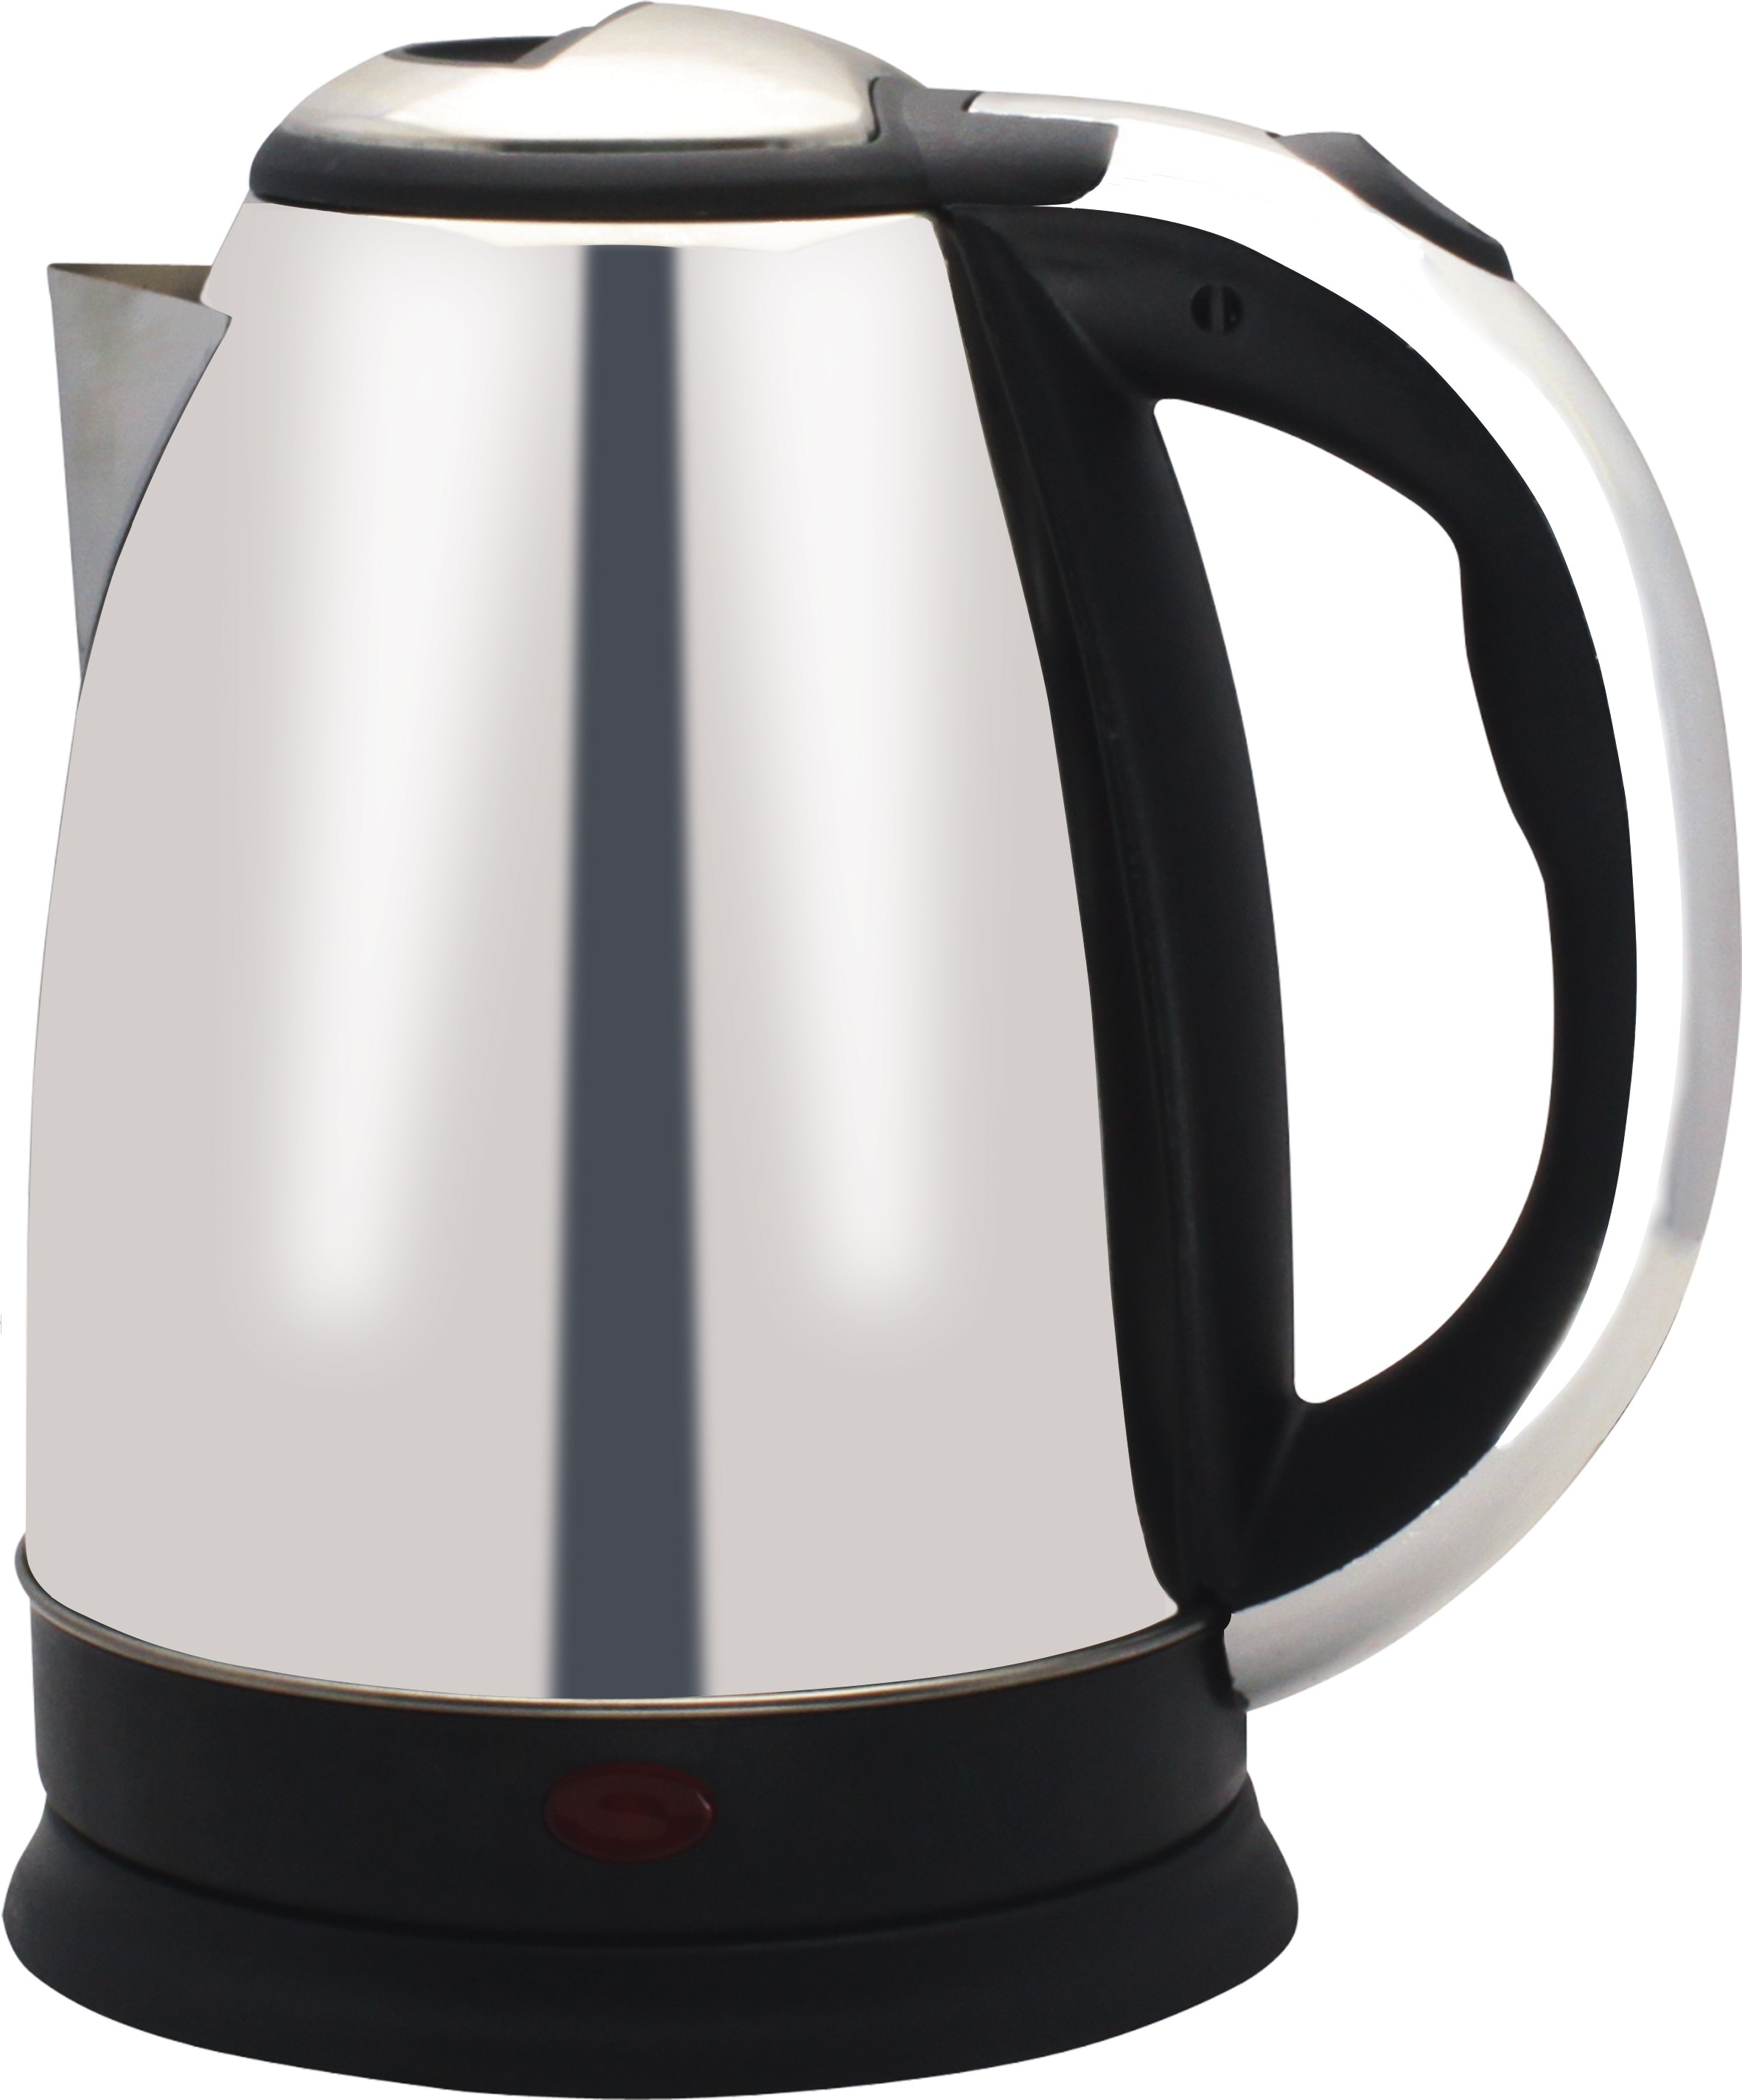 Concord TPSK-1806 Electric Kettle Image